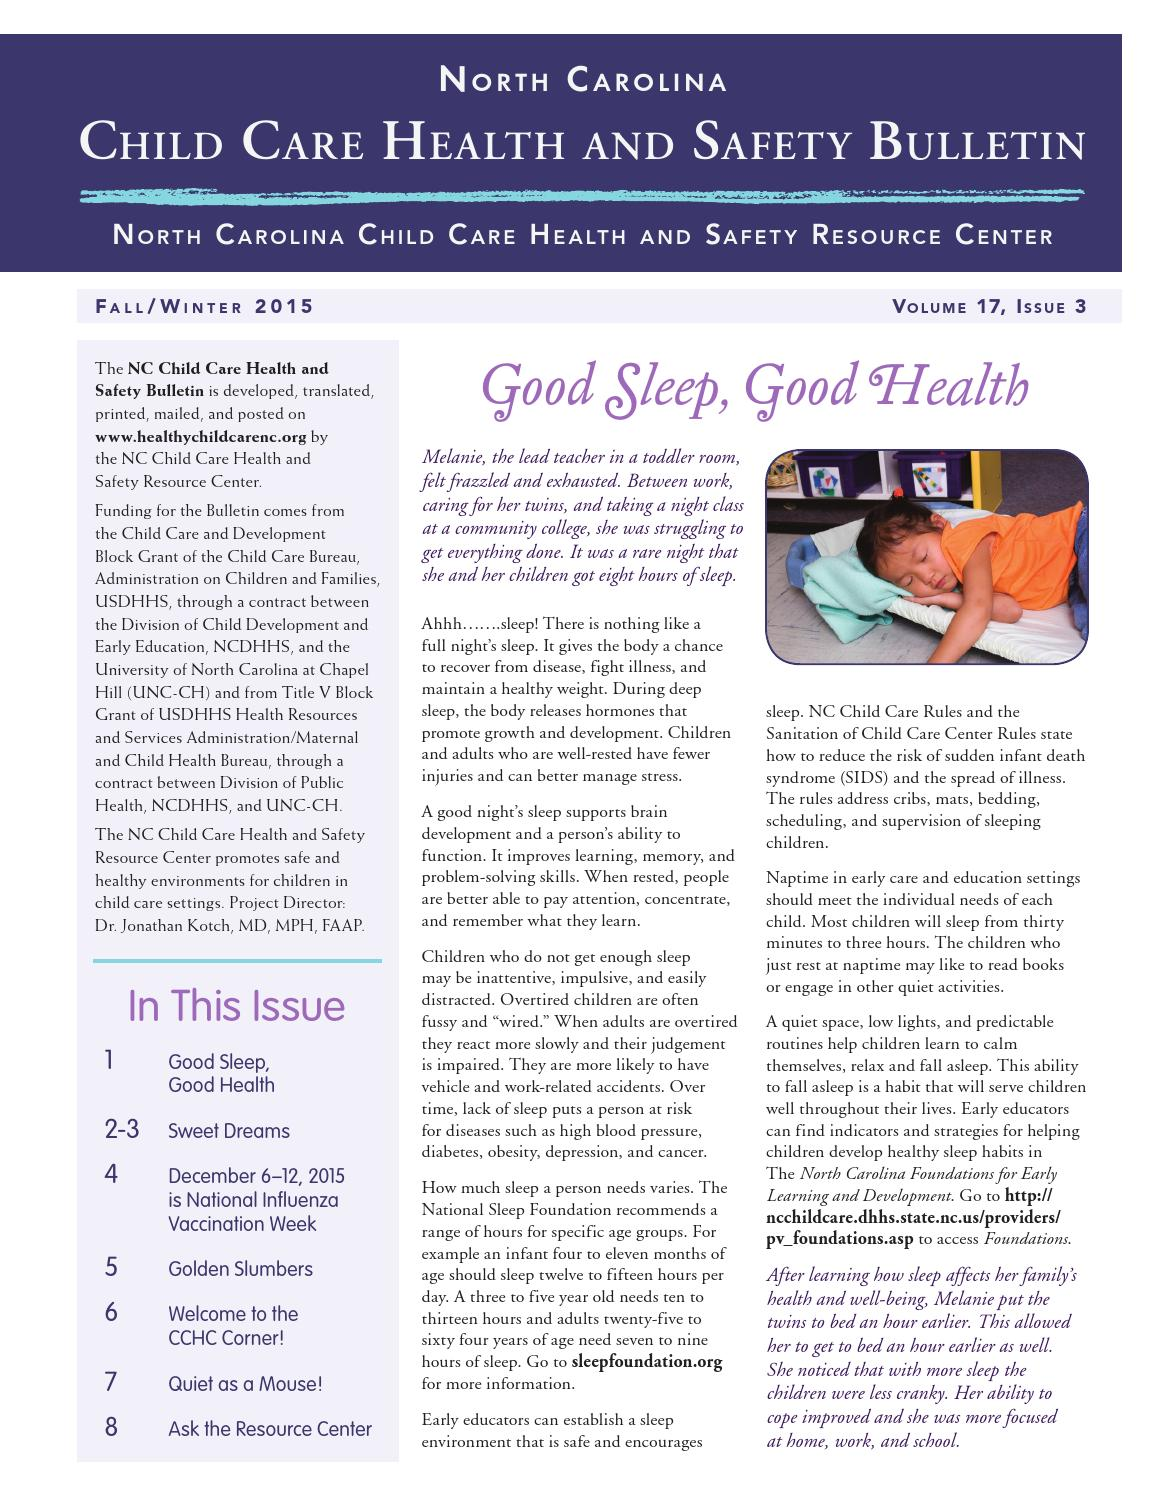 north carolina child care health and safety bulletin sally johns cc newfall15 1 year ago sallyjohnsdesign